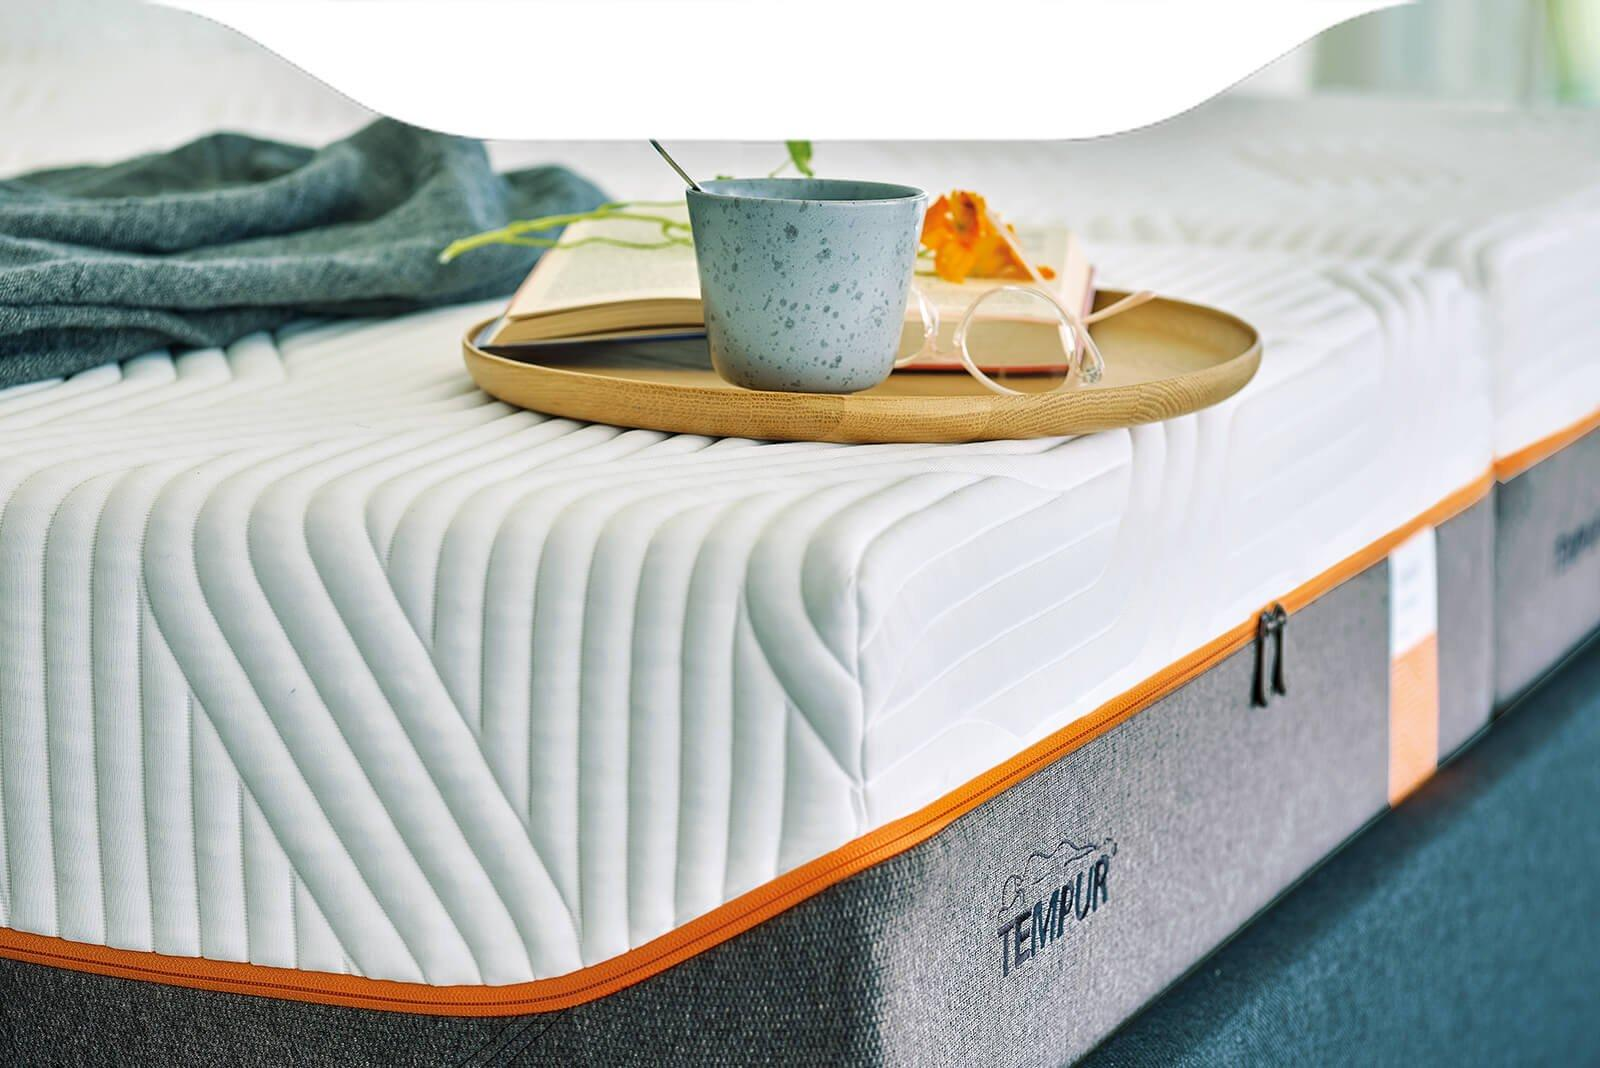 Quality Mattress Uk Tempur Official Save Up To 300 On All Tempur Mattresses